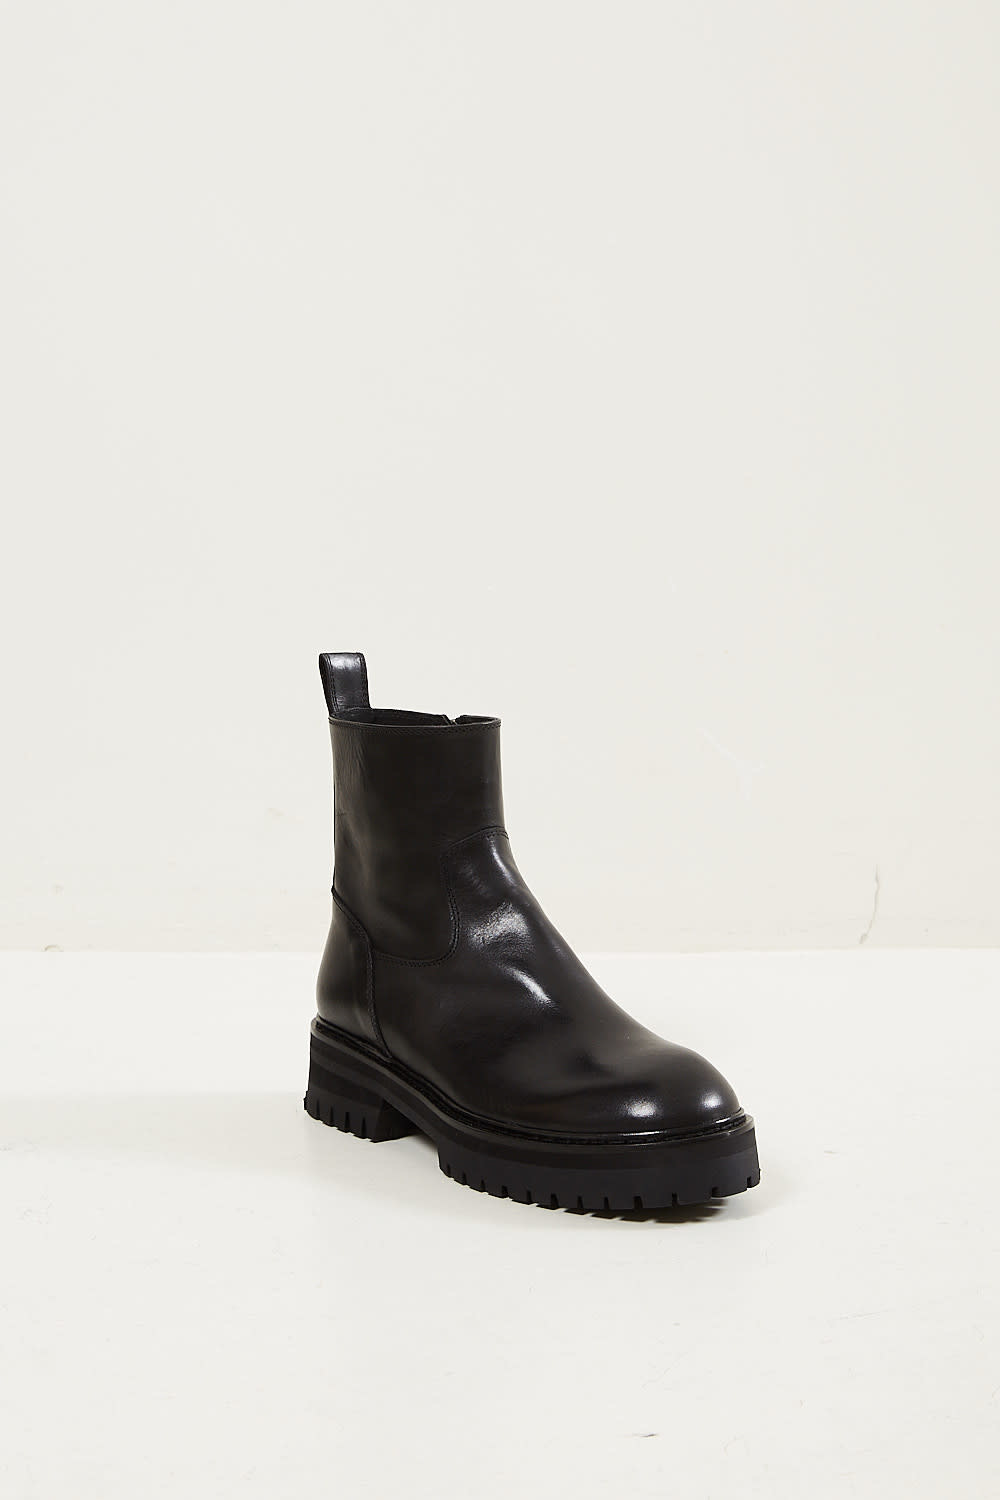 Ann Demeulemeester - Tucson leather boots